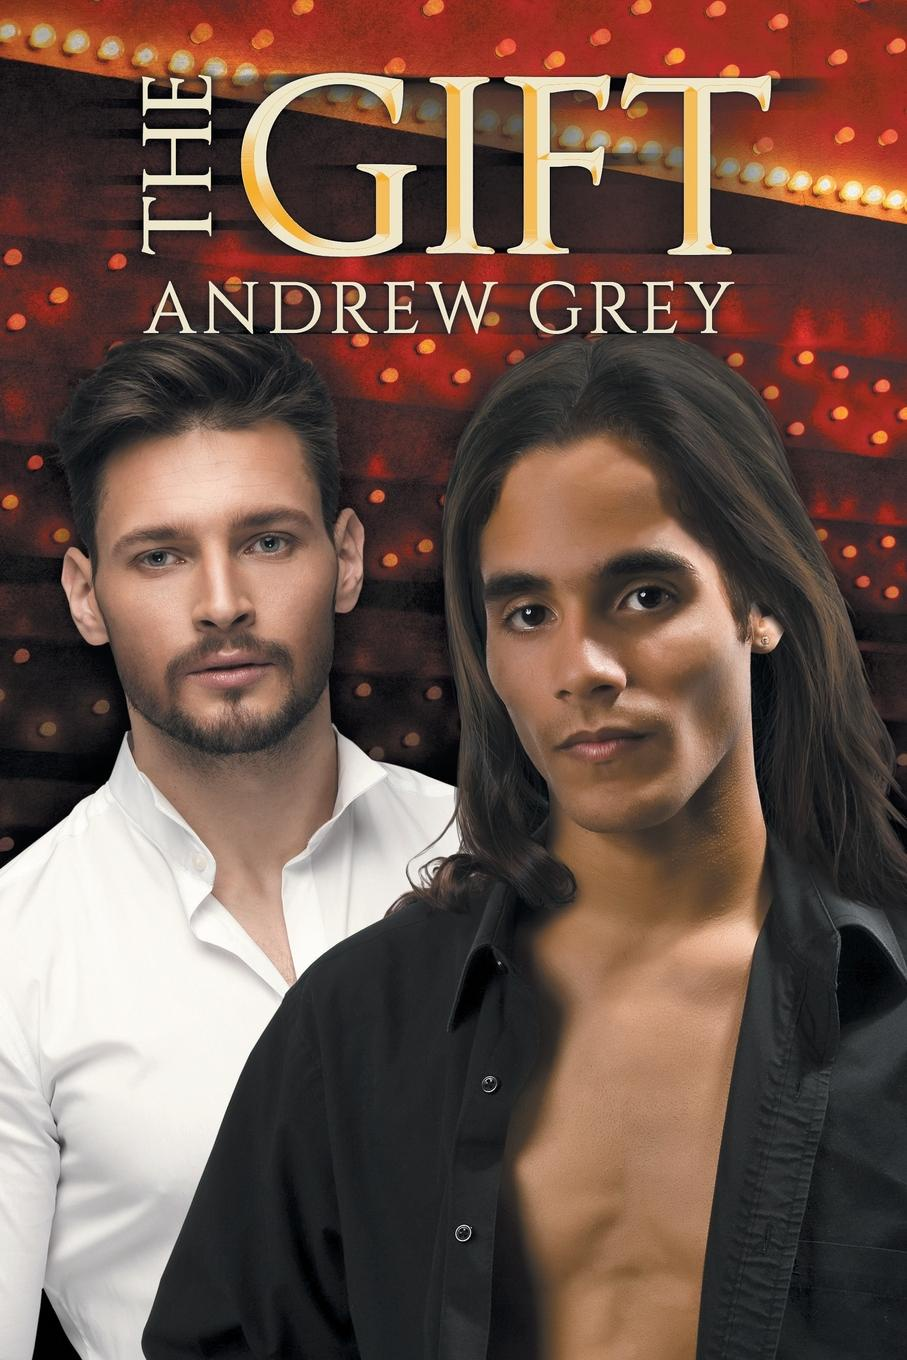 Andrew Grey The Gift alejandro gonzales the collection